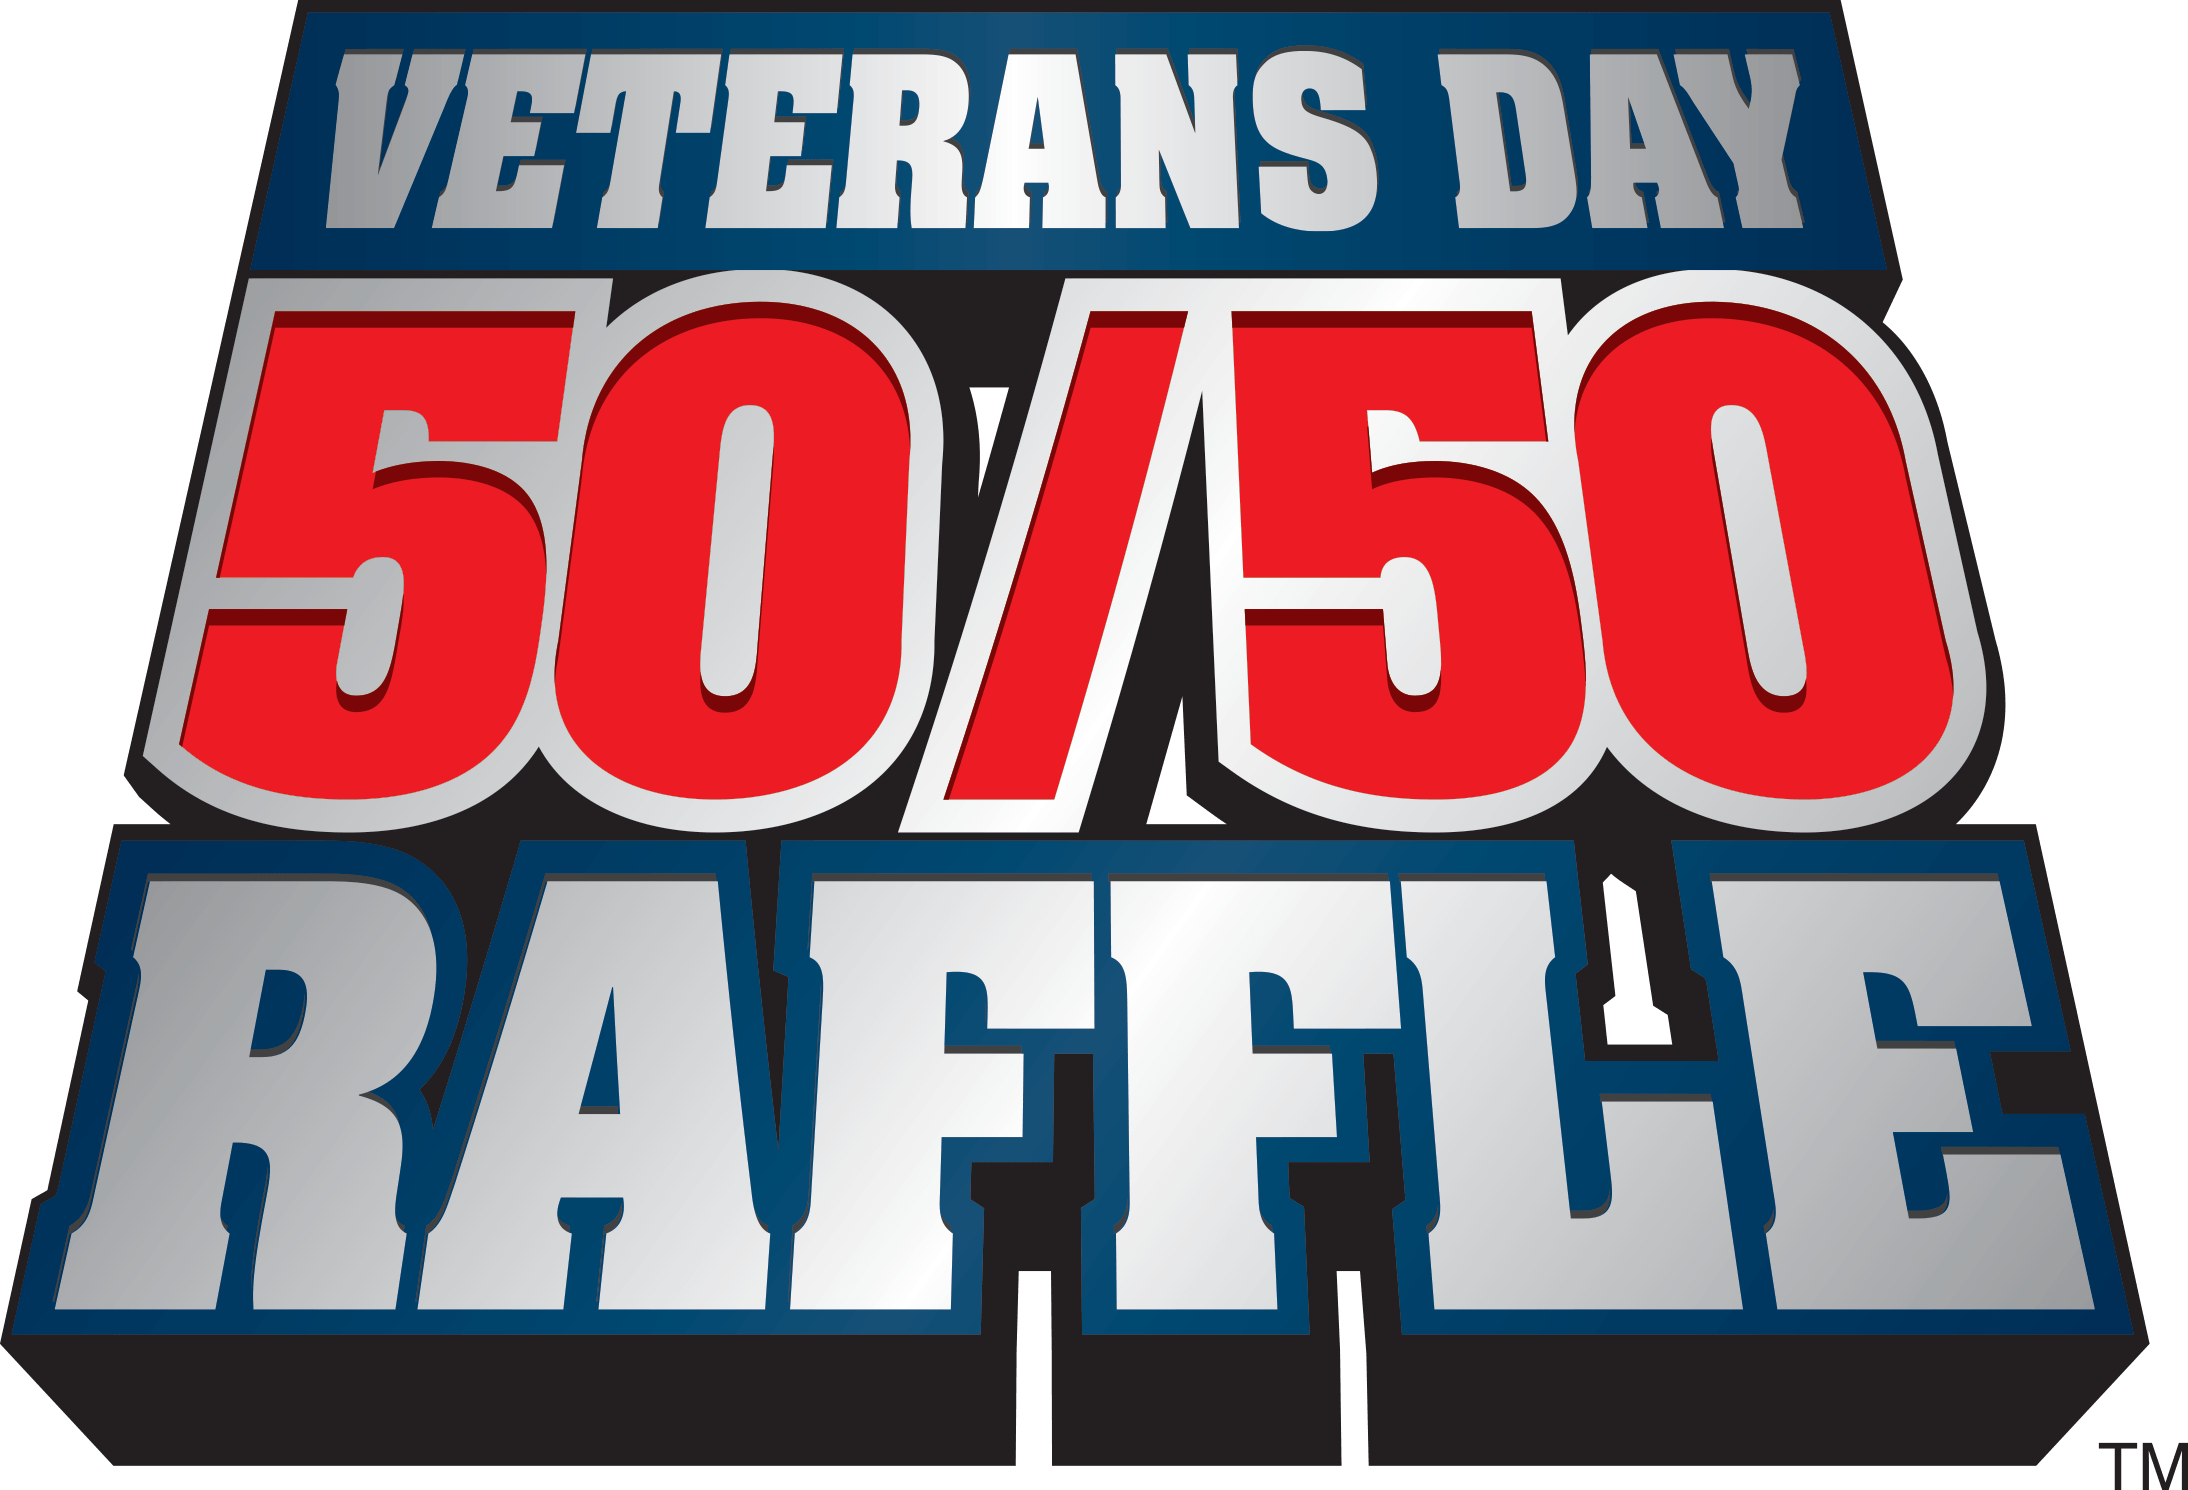 50 50 raffle clipart template picture royalty free library 50 50 raffle clipart clipart images gallery for free download ... picture royalty free library